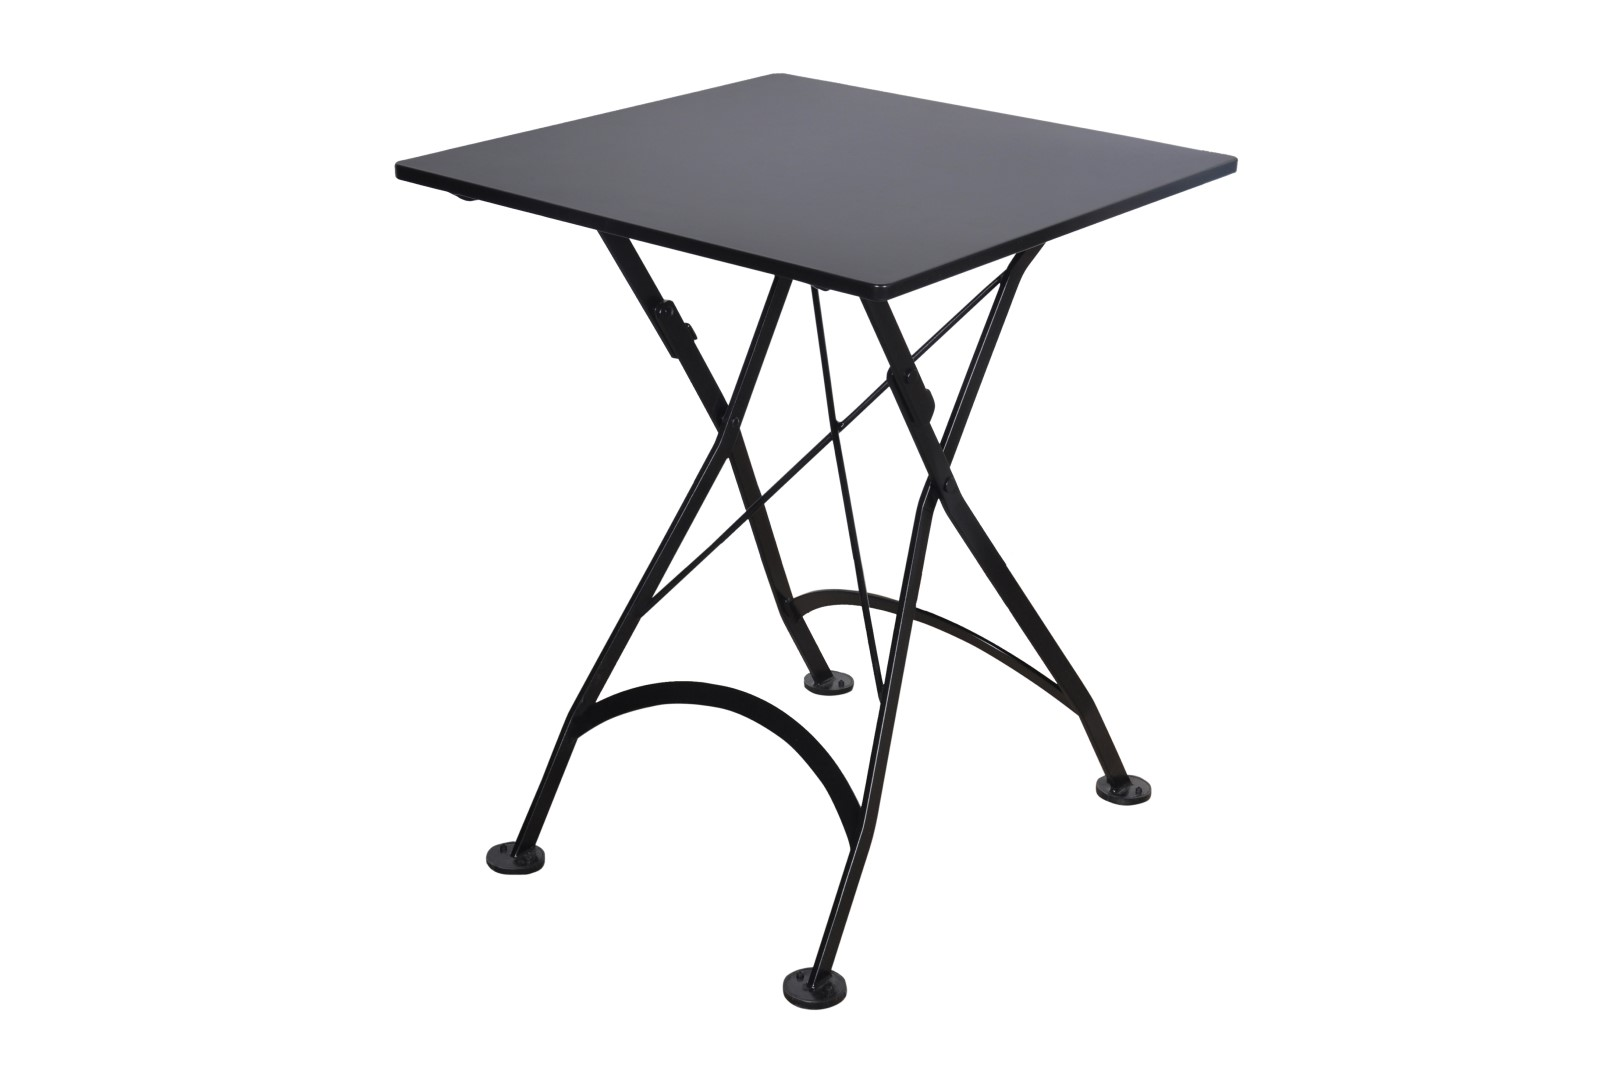 4122S-BK Metal Table 24 x 24